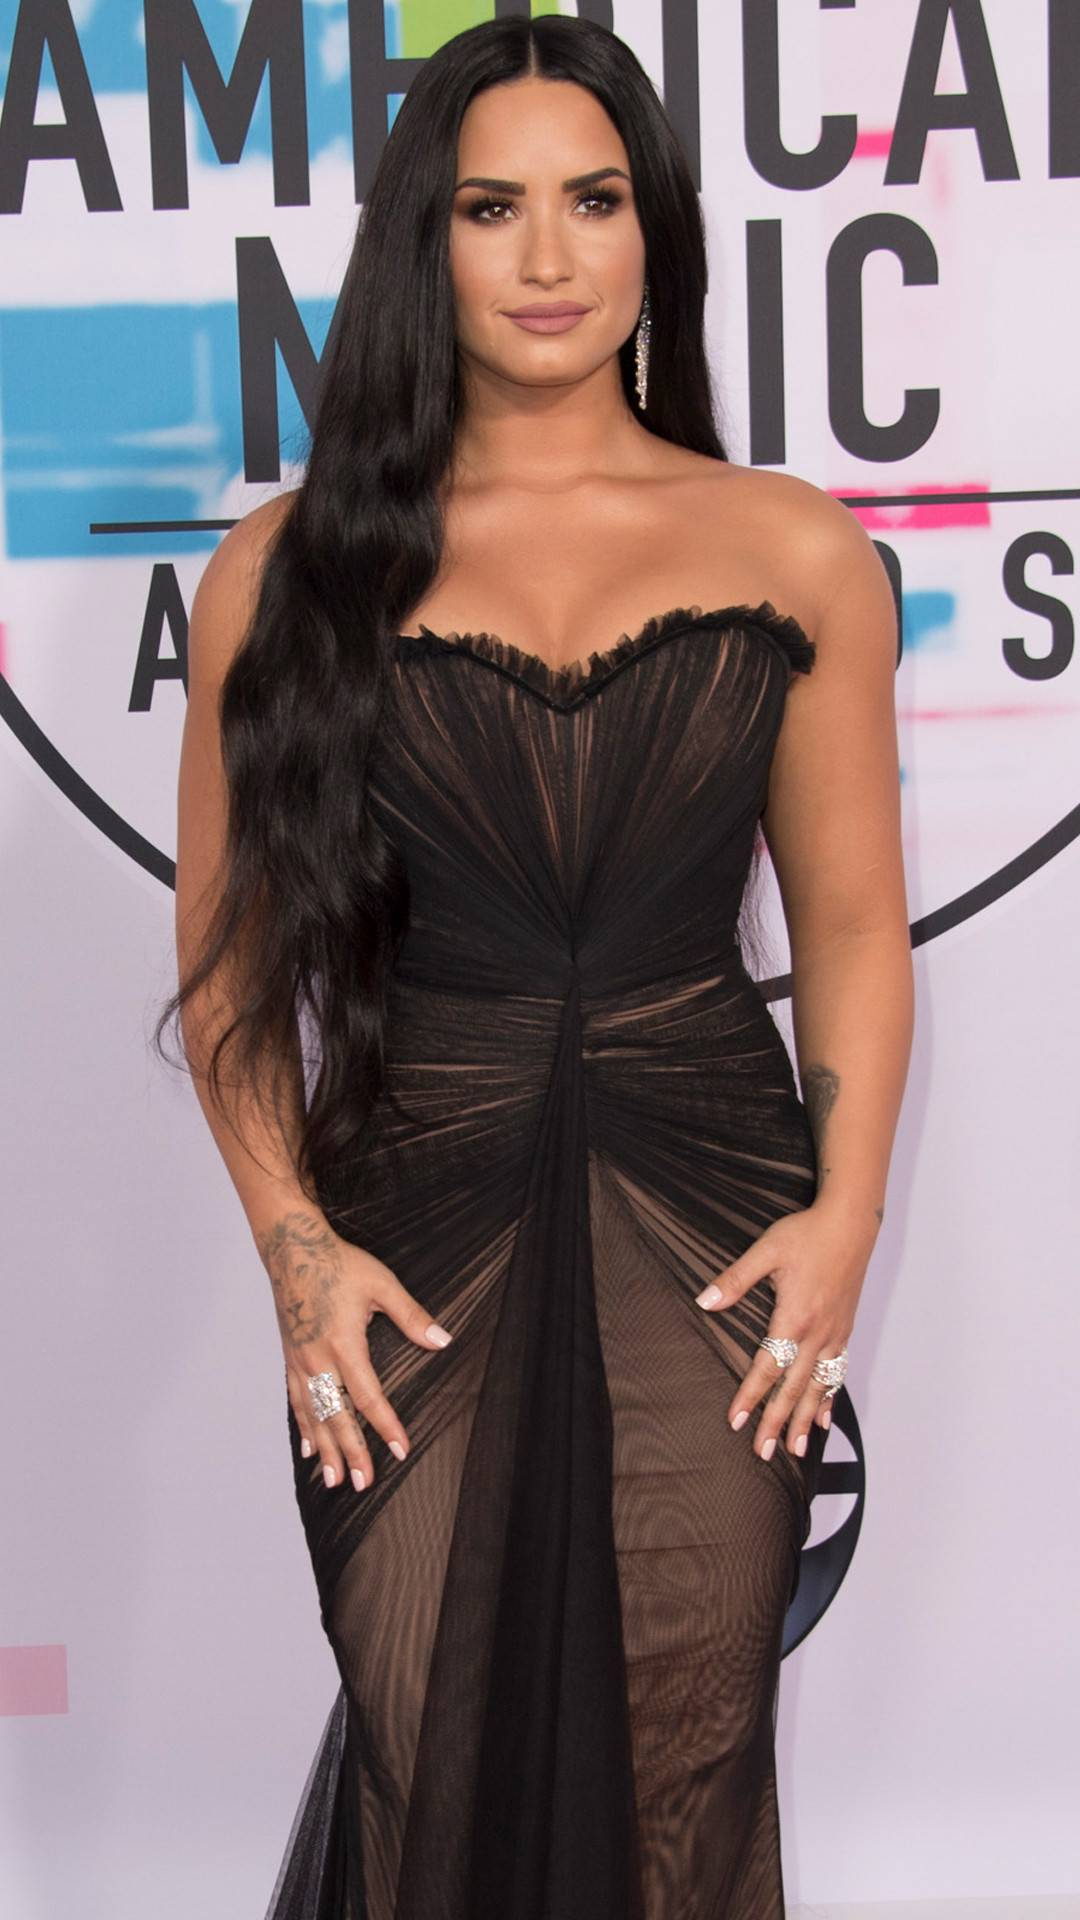 Demi Lovato Temporarily Leaves Rehab for Treatment in Chicago